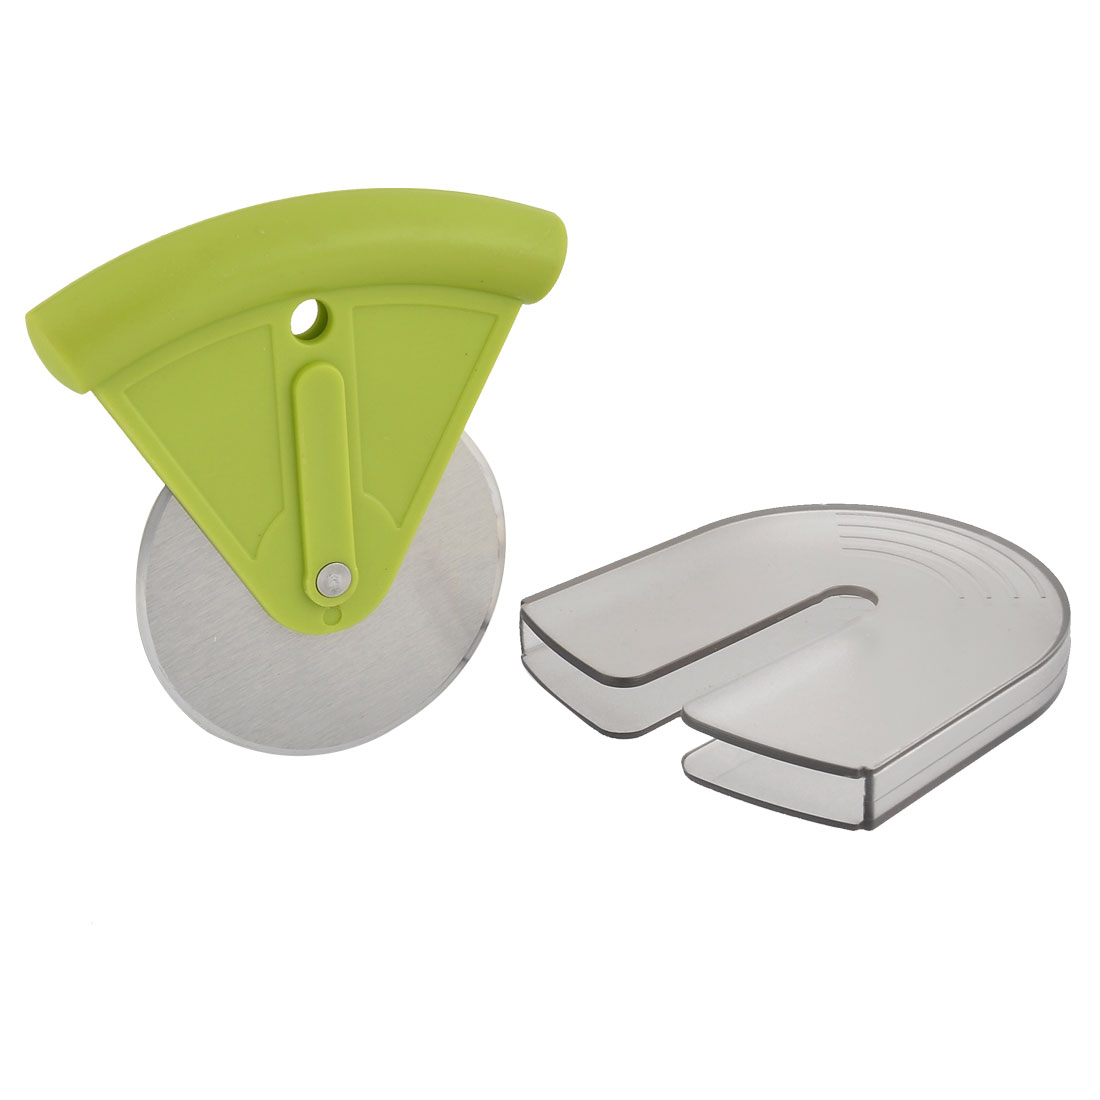 Stainless Steel Battercake Dividing Tool Pizza Cutter Green Silver Tone